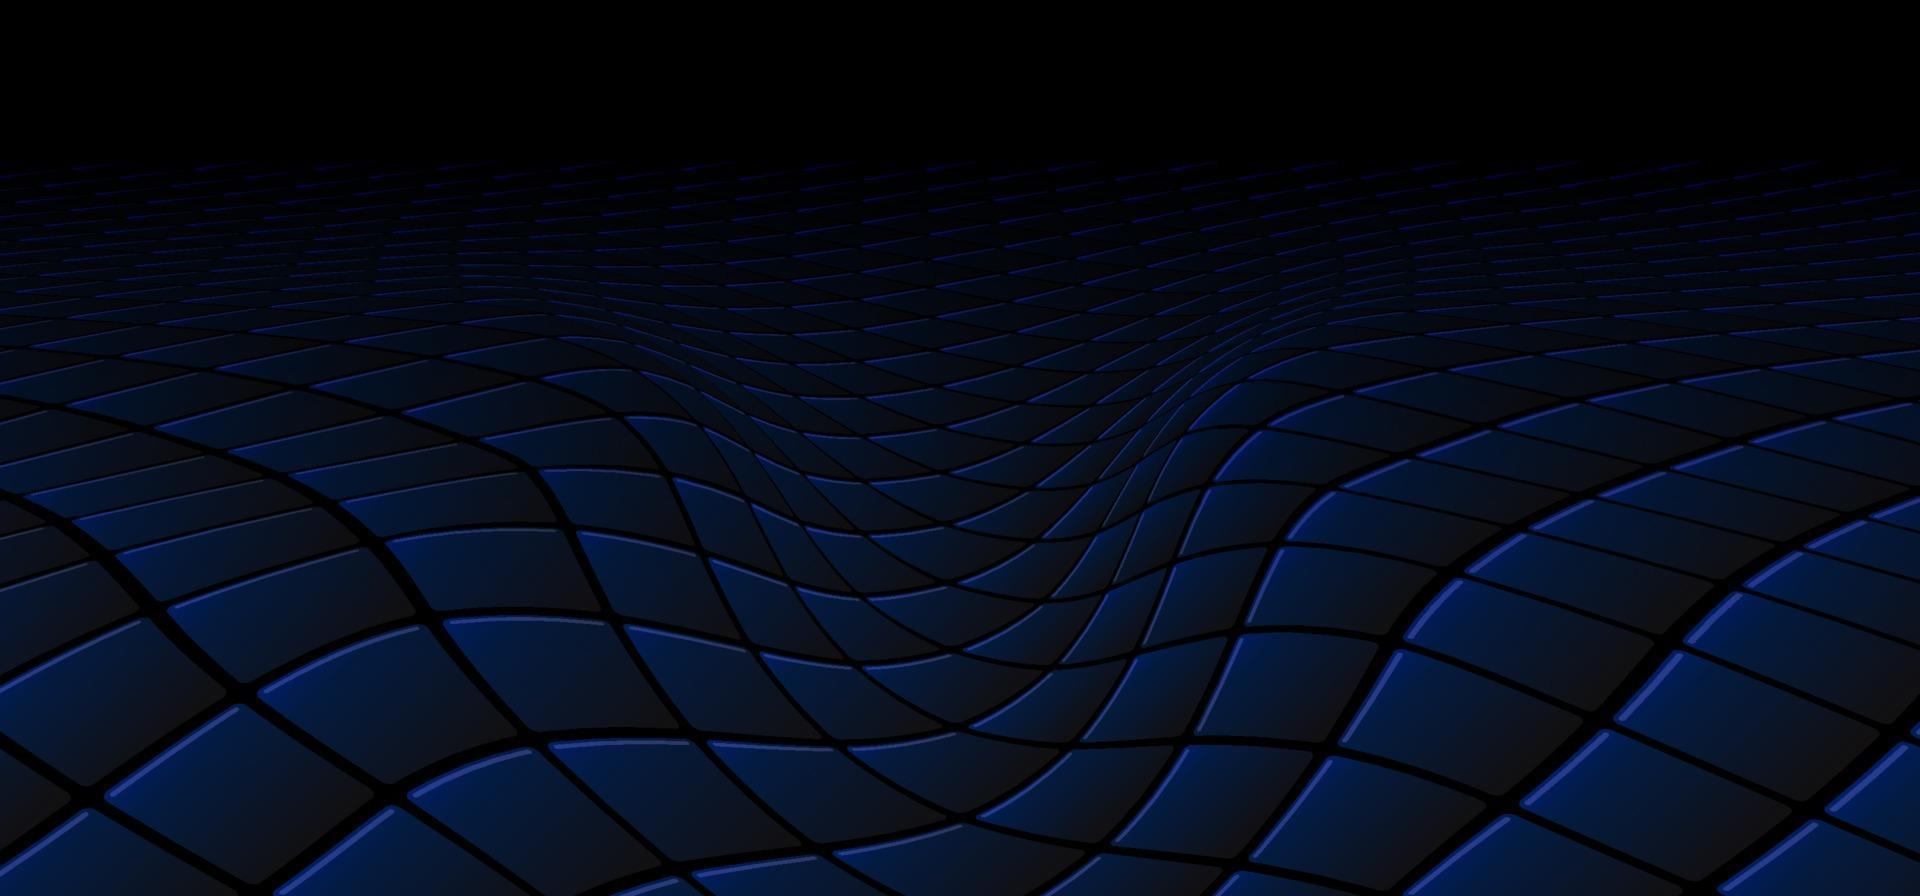 Abstract technology concept black and blue square pattern wave perspective background and texture vector